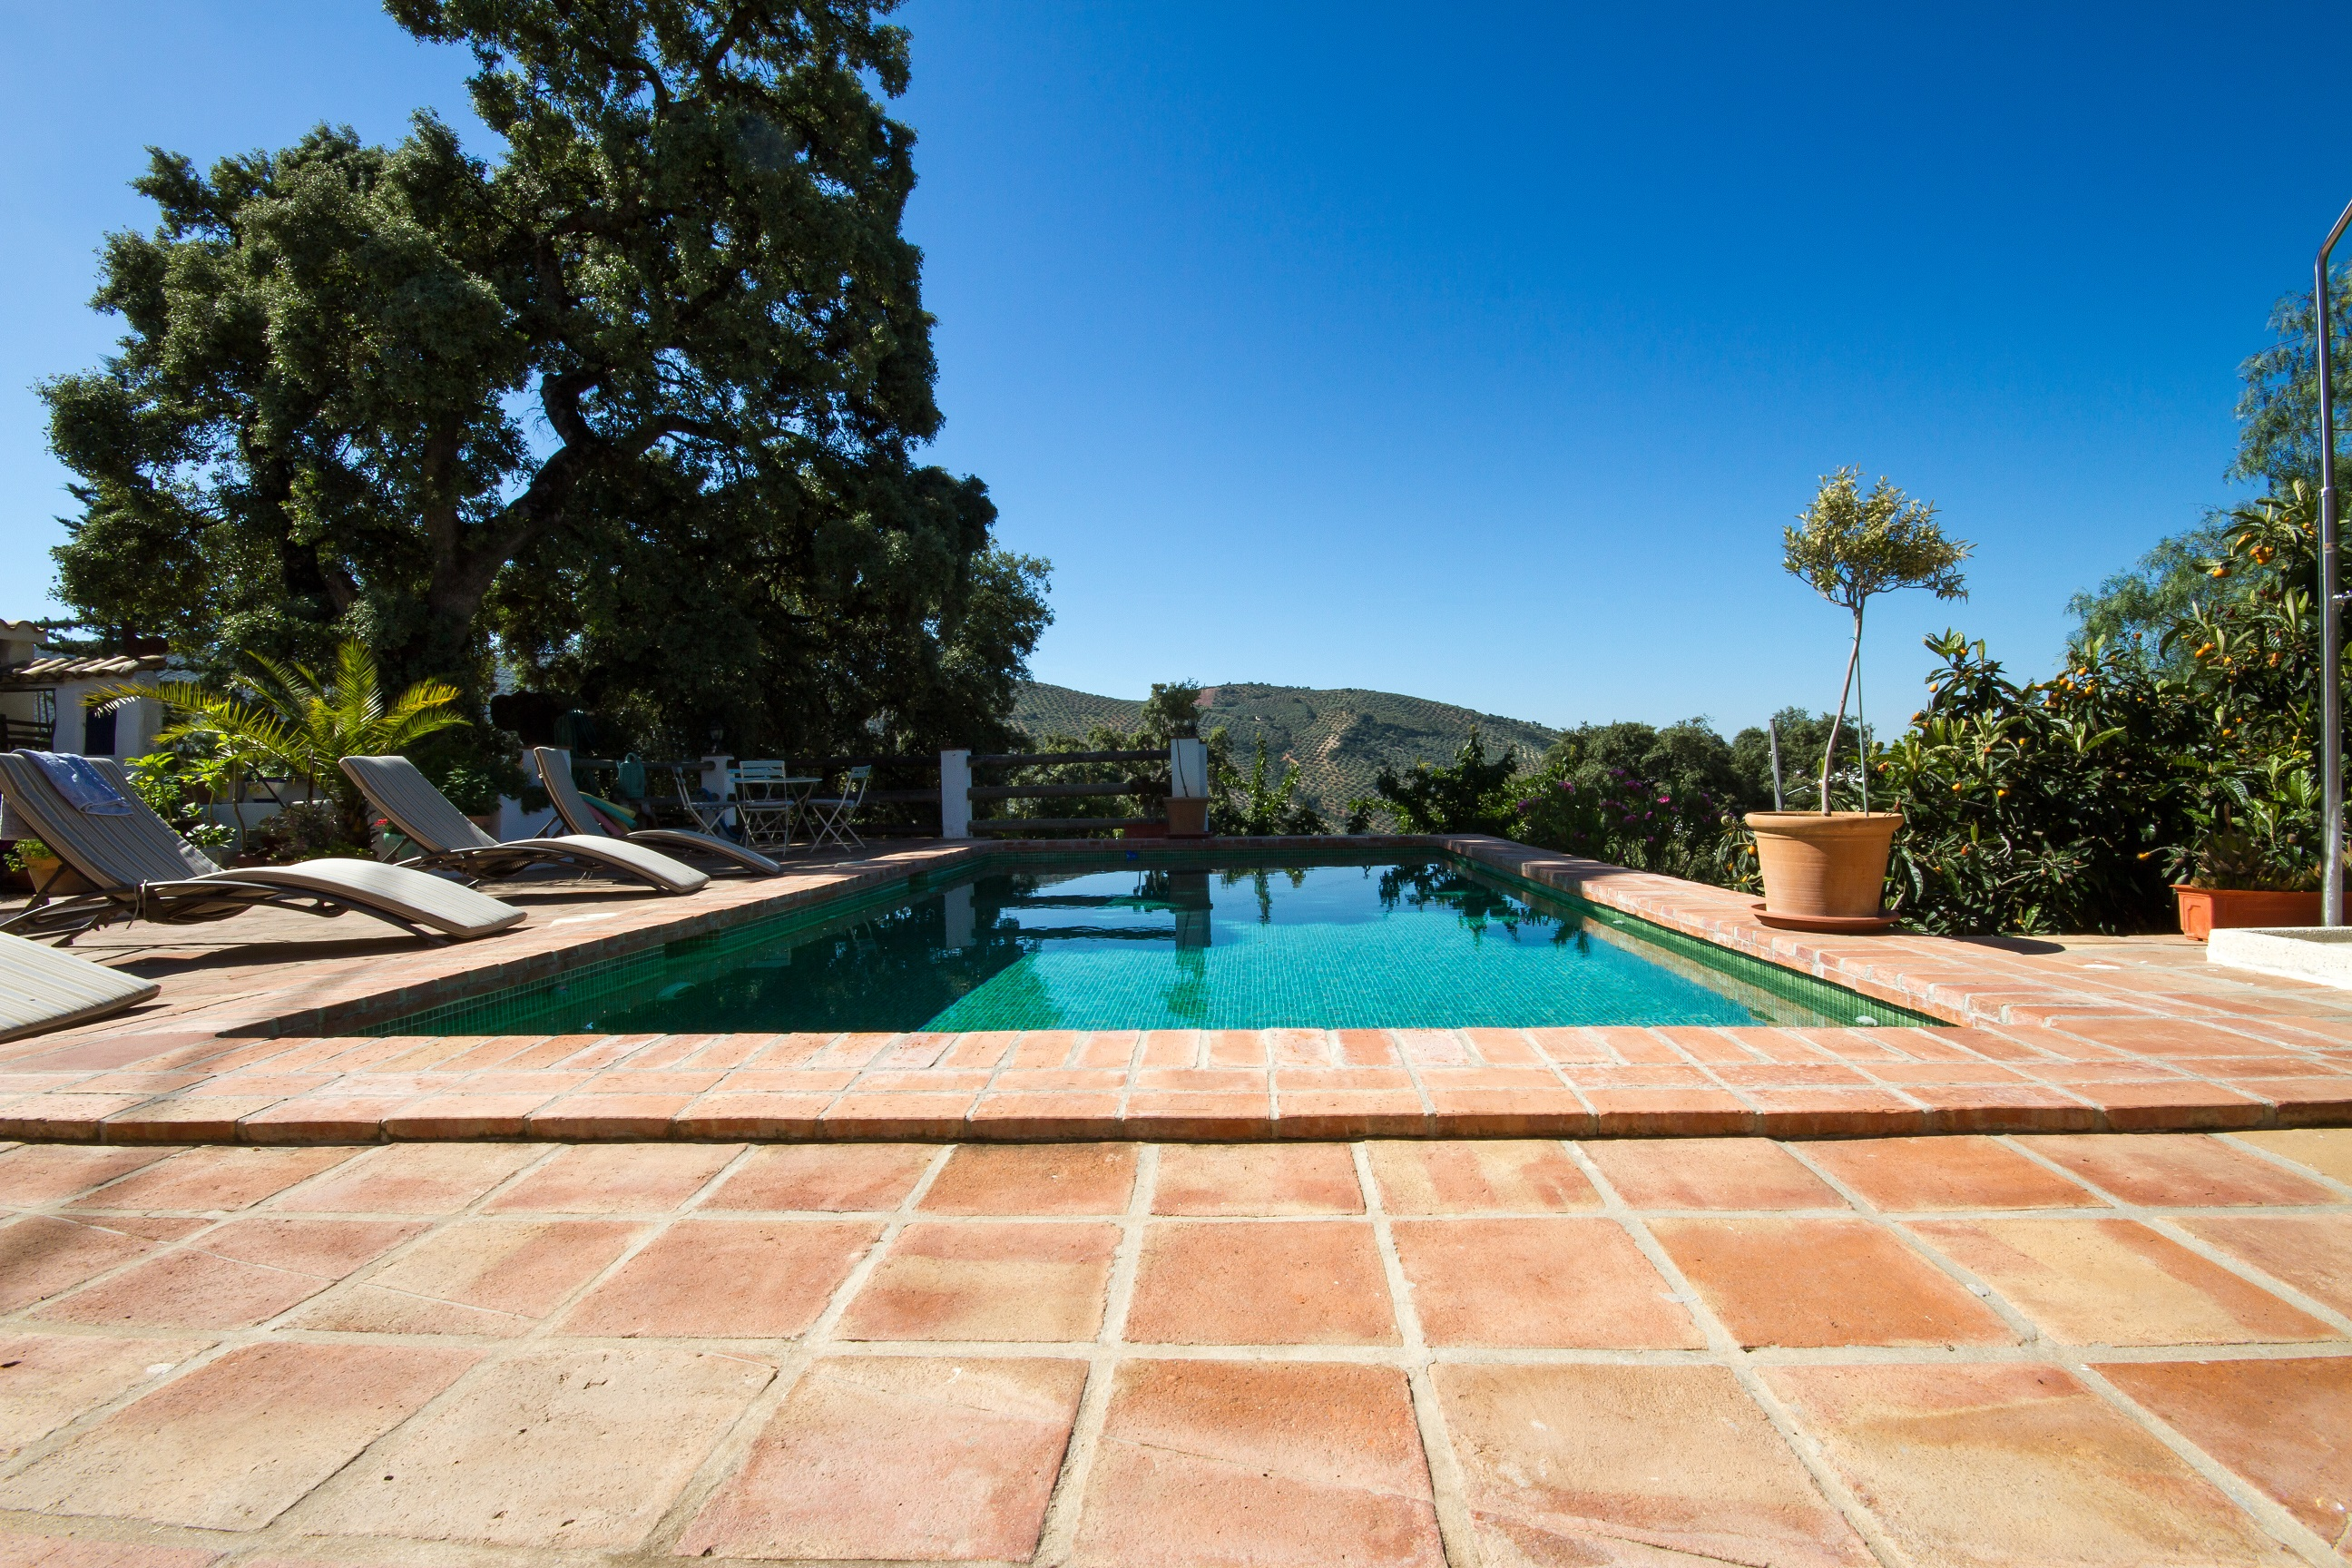 A pool with a view of the ancient olive grove of rural andalucia